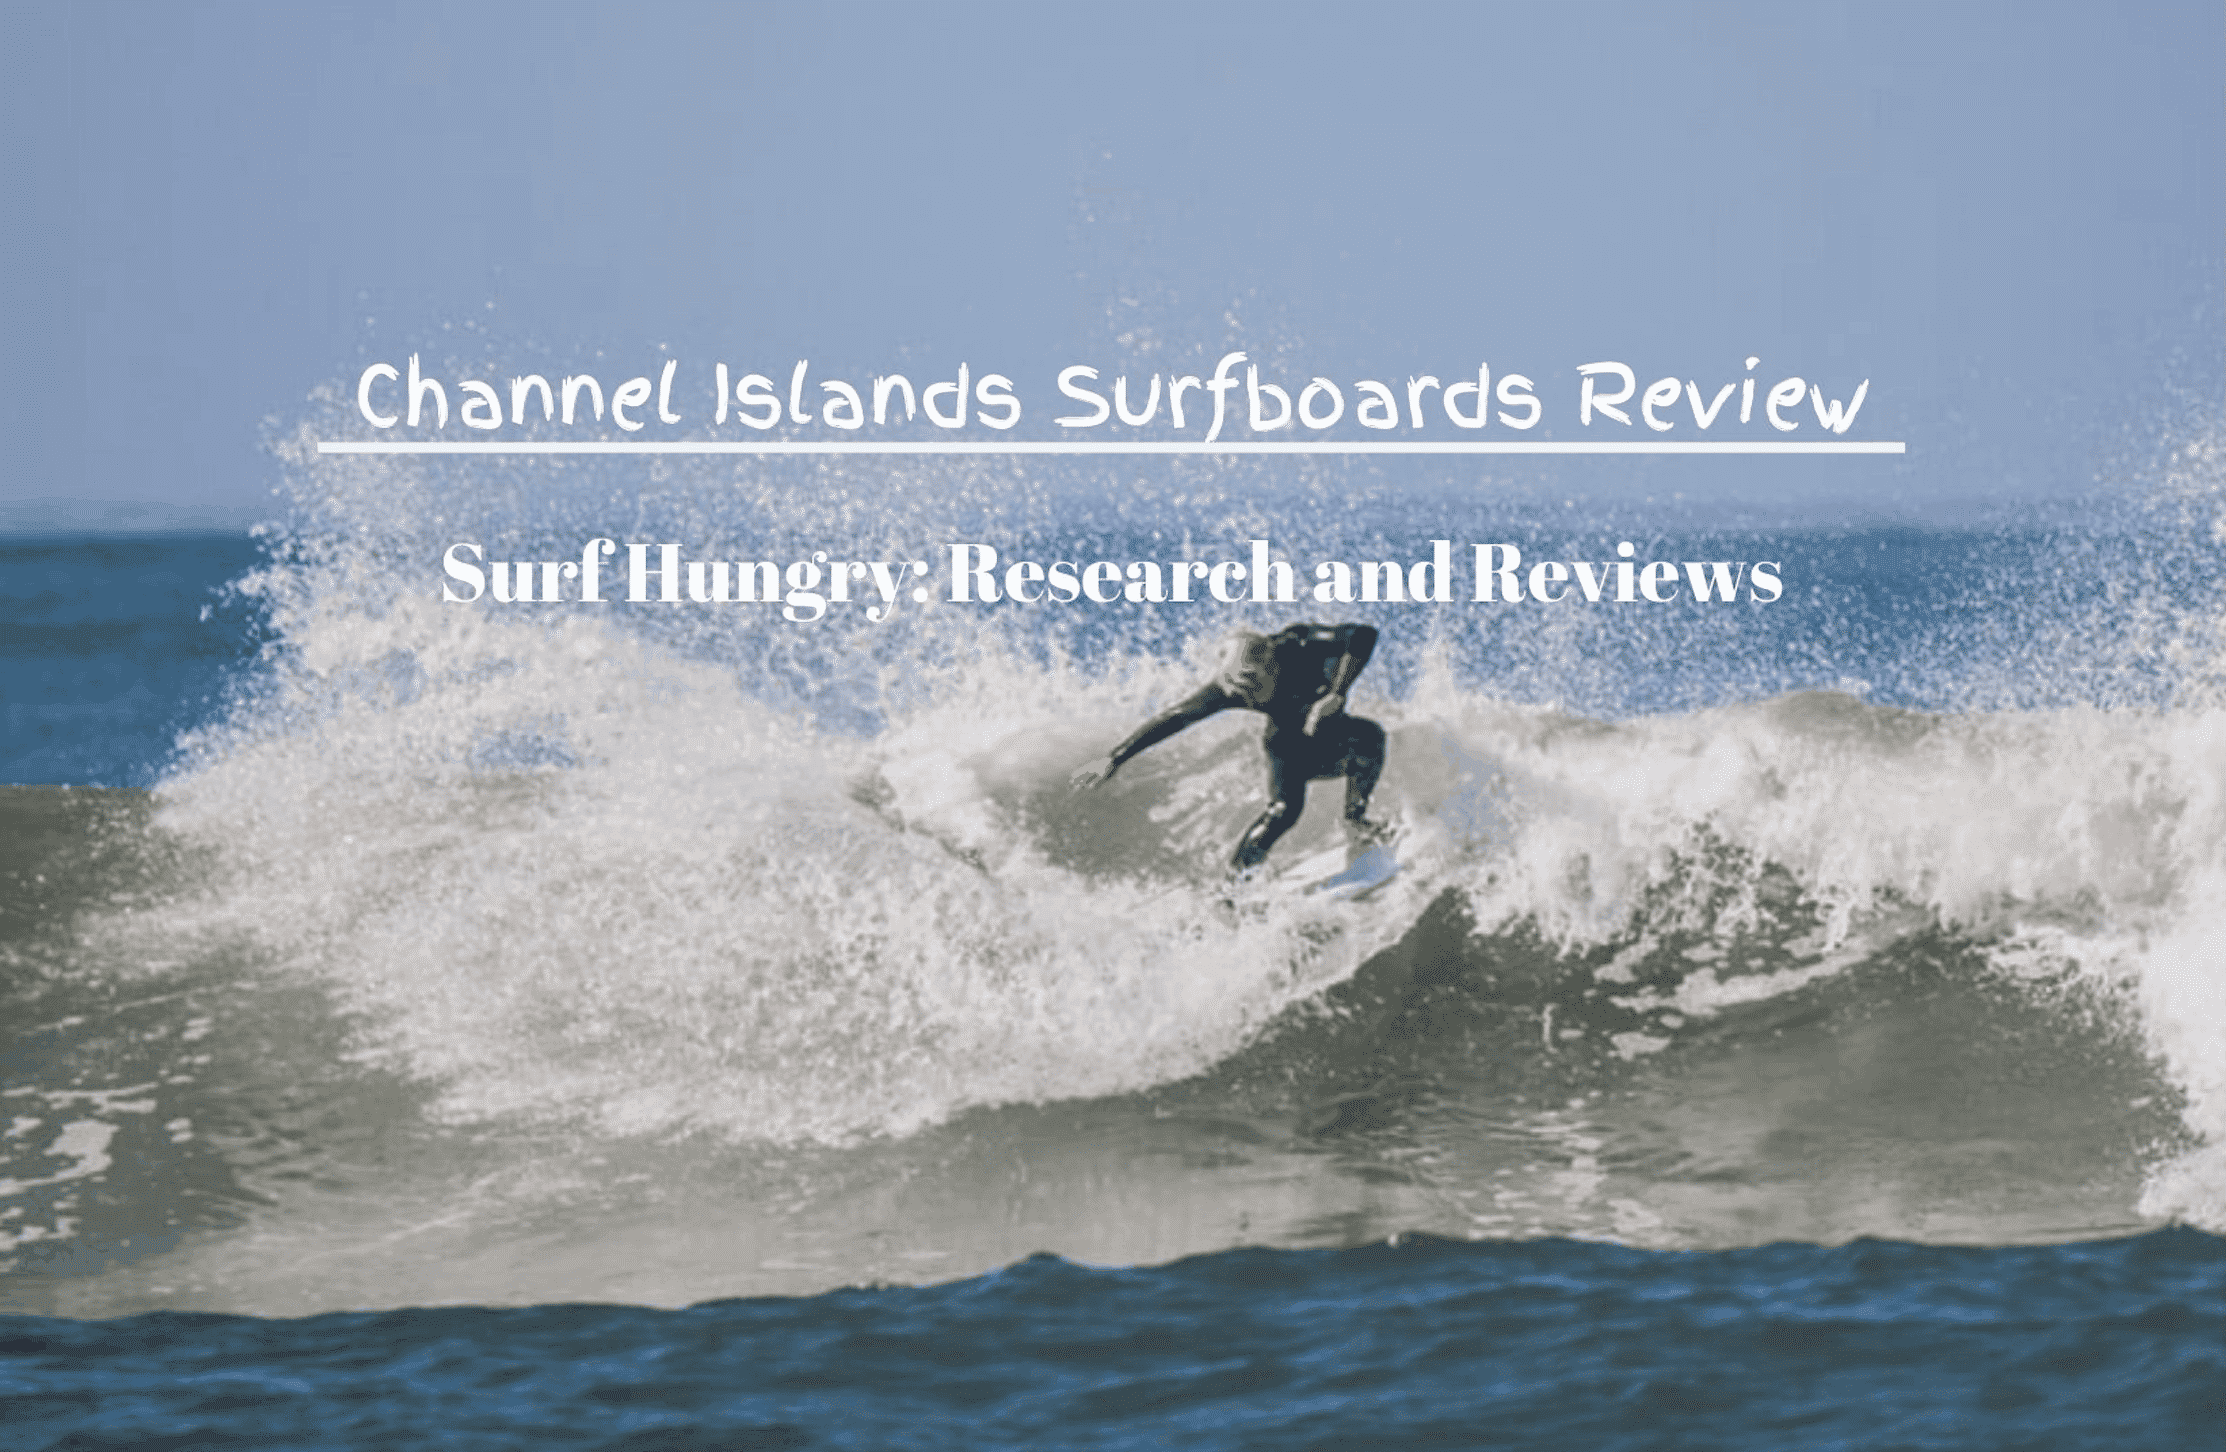 Channel Islands Surfboards Review